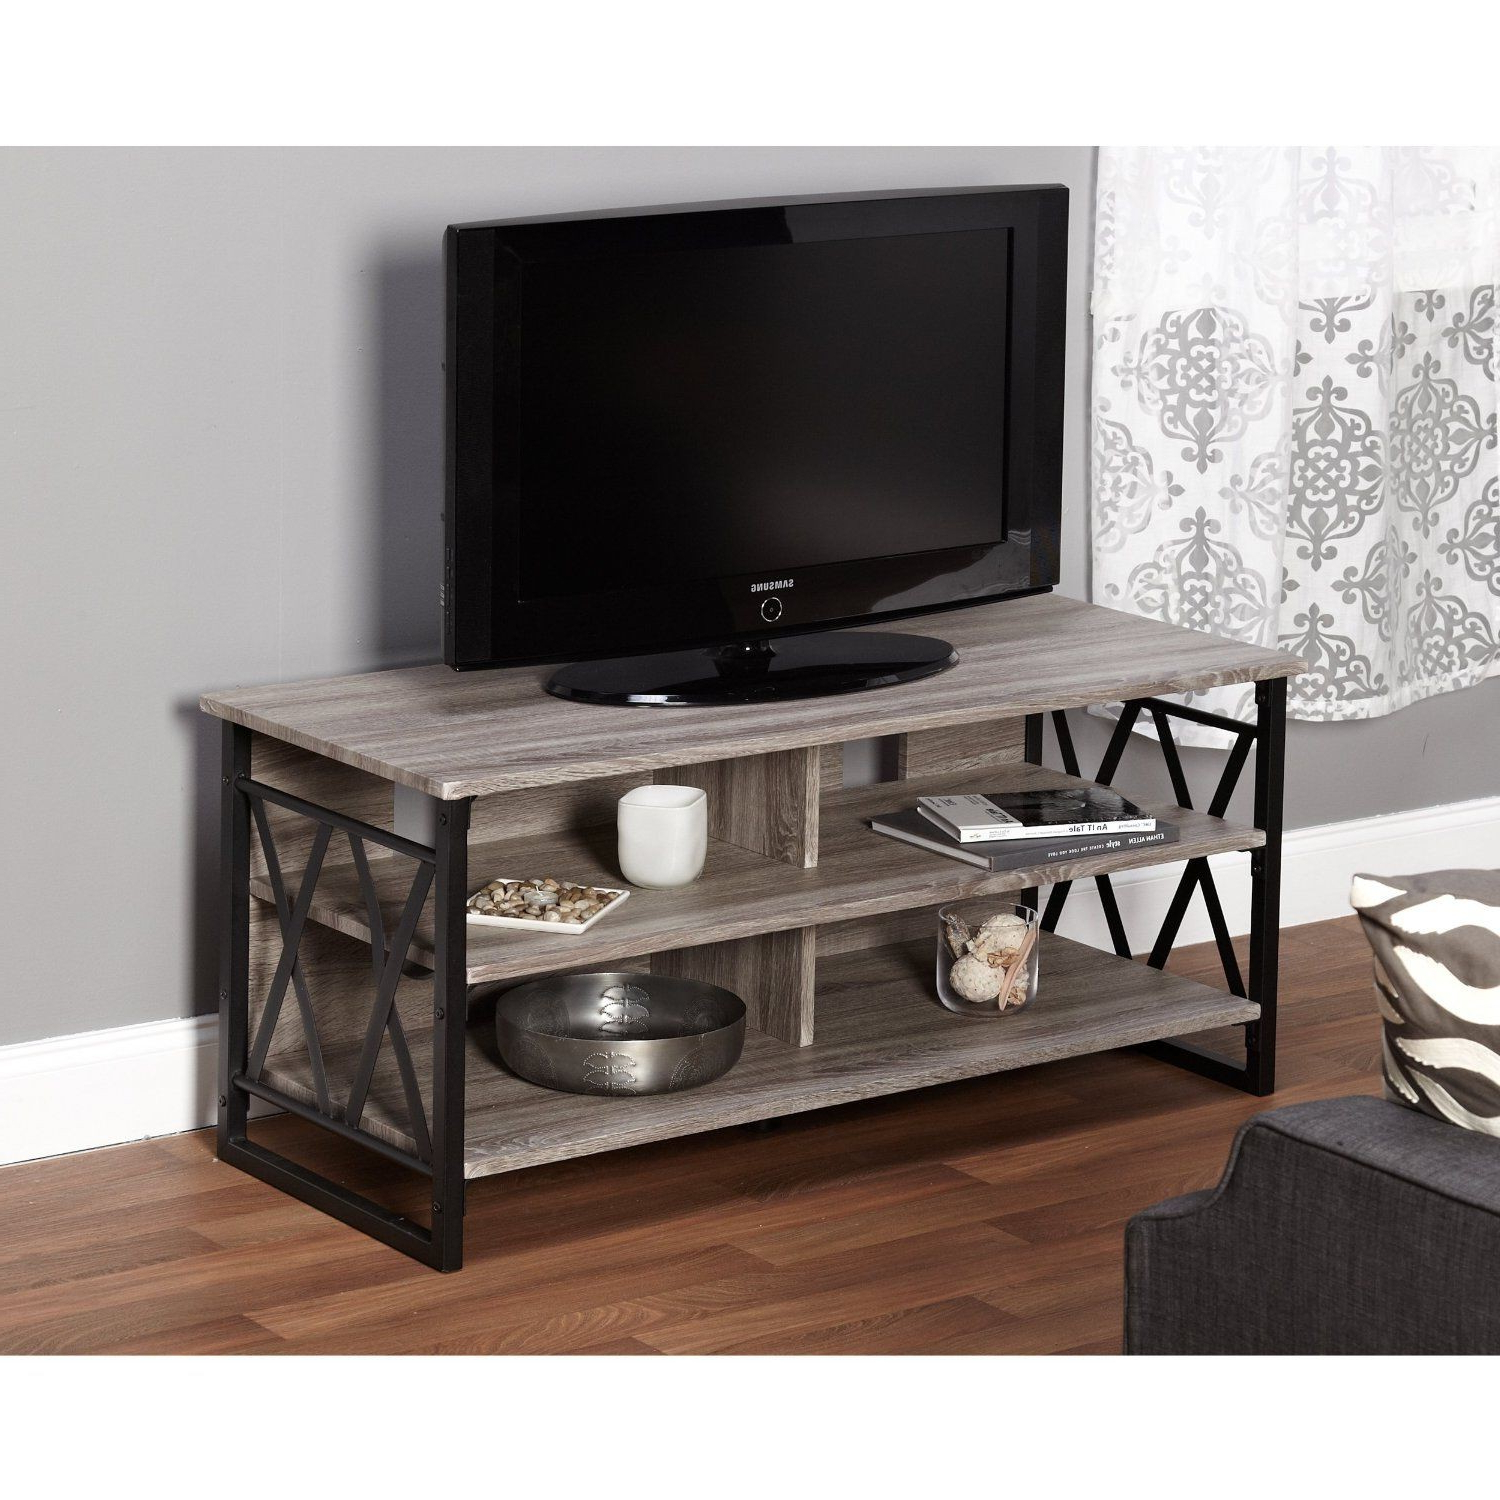 Metal Tv Stand (View 12 of 18)